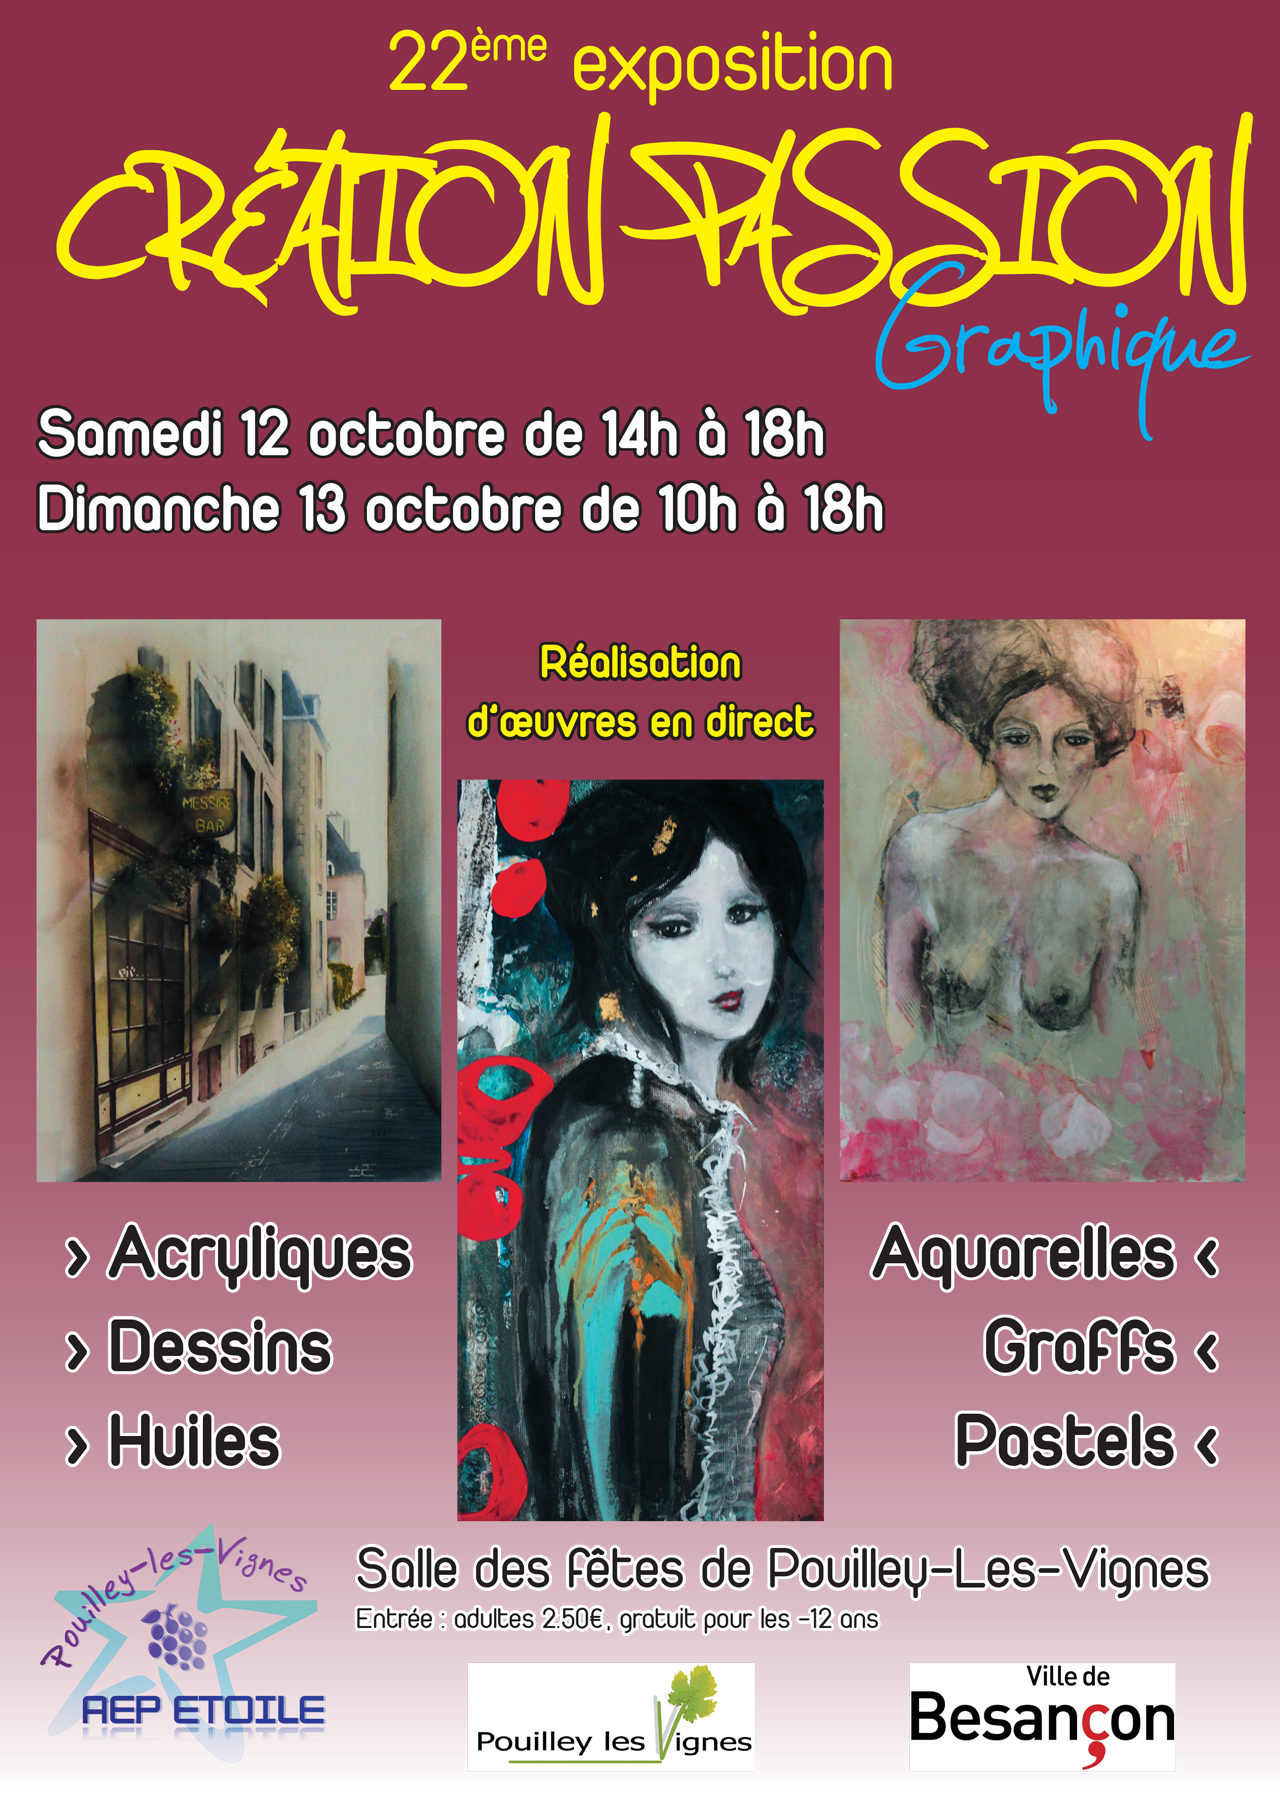 2013-09 - Affiche exposition Creation Passion Graphique